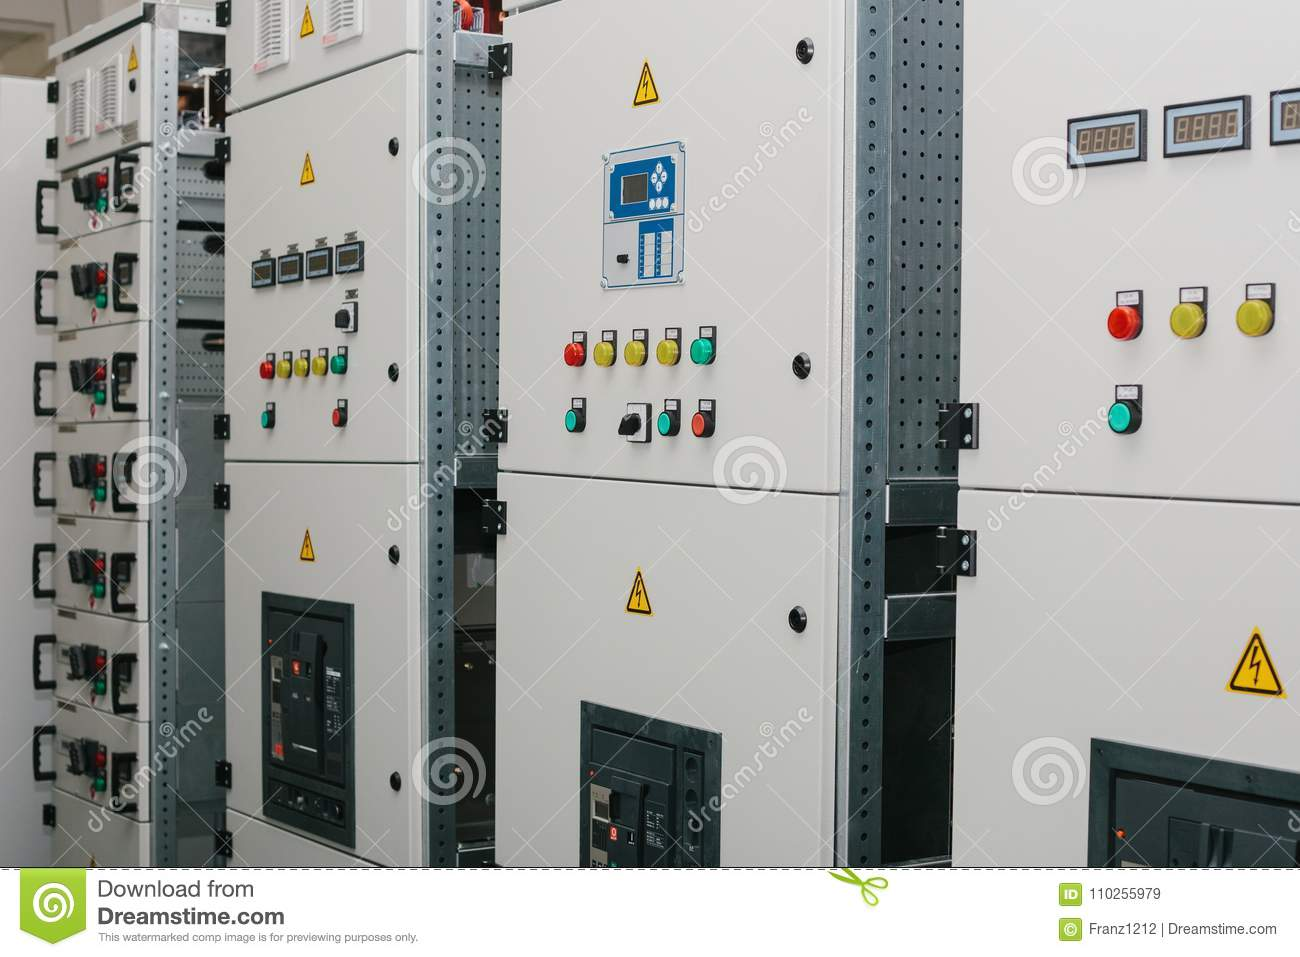 hight resolution of download manufacture of low voltage cabinets modern smart technologies in the electric power industry